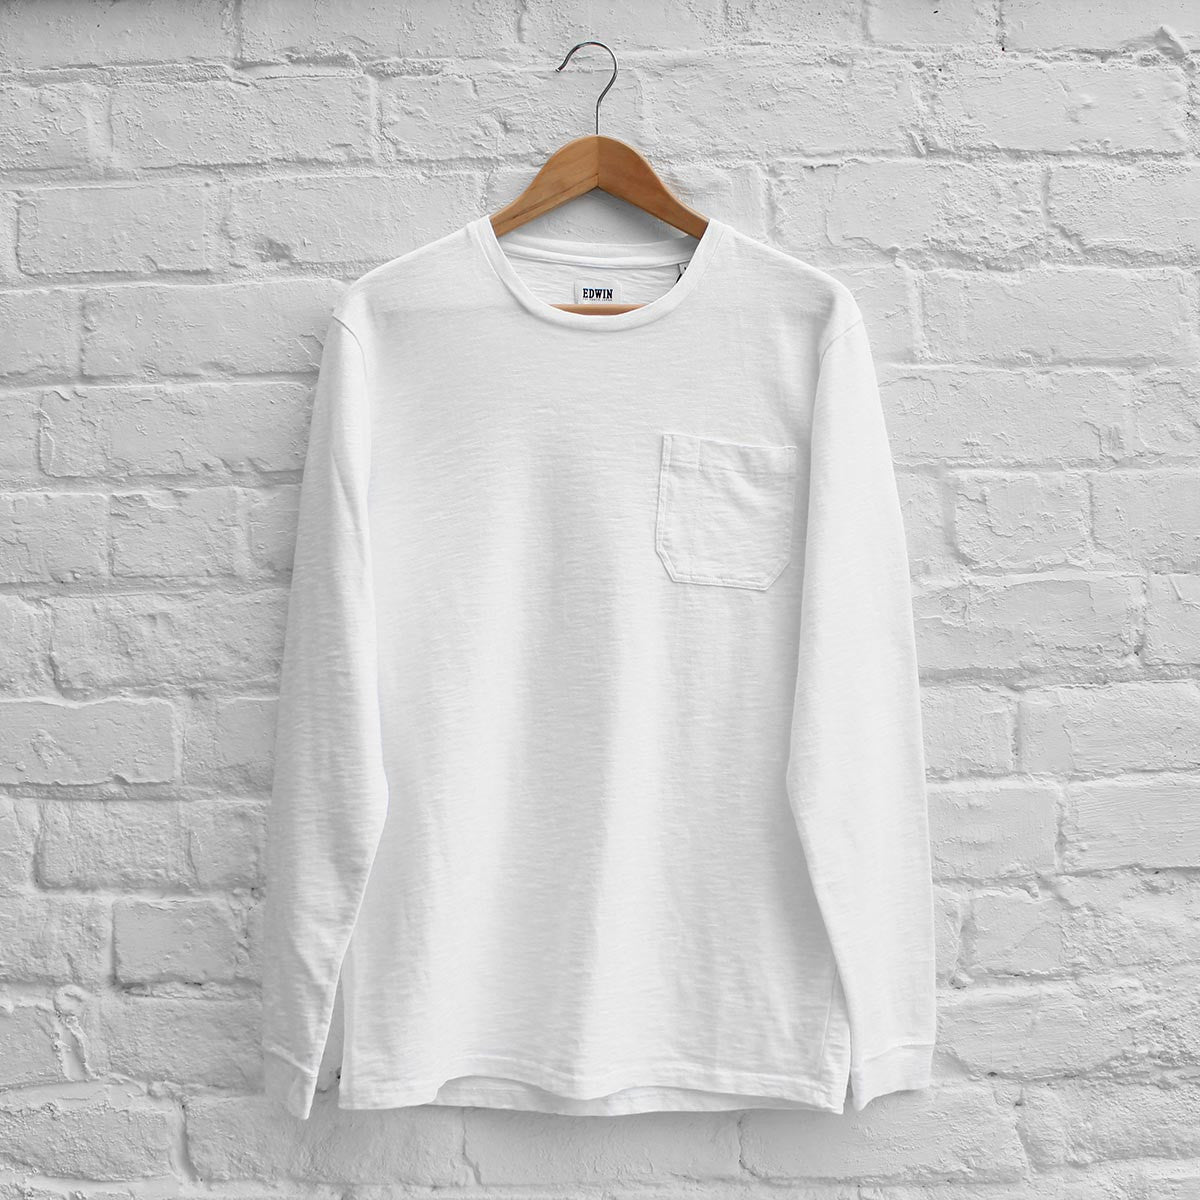 Edwin Marvin Long Sleeve T-Shirt White